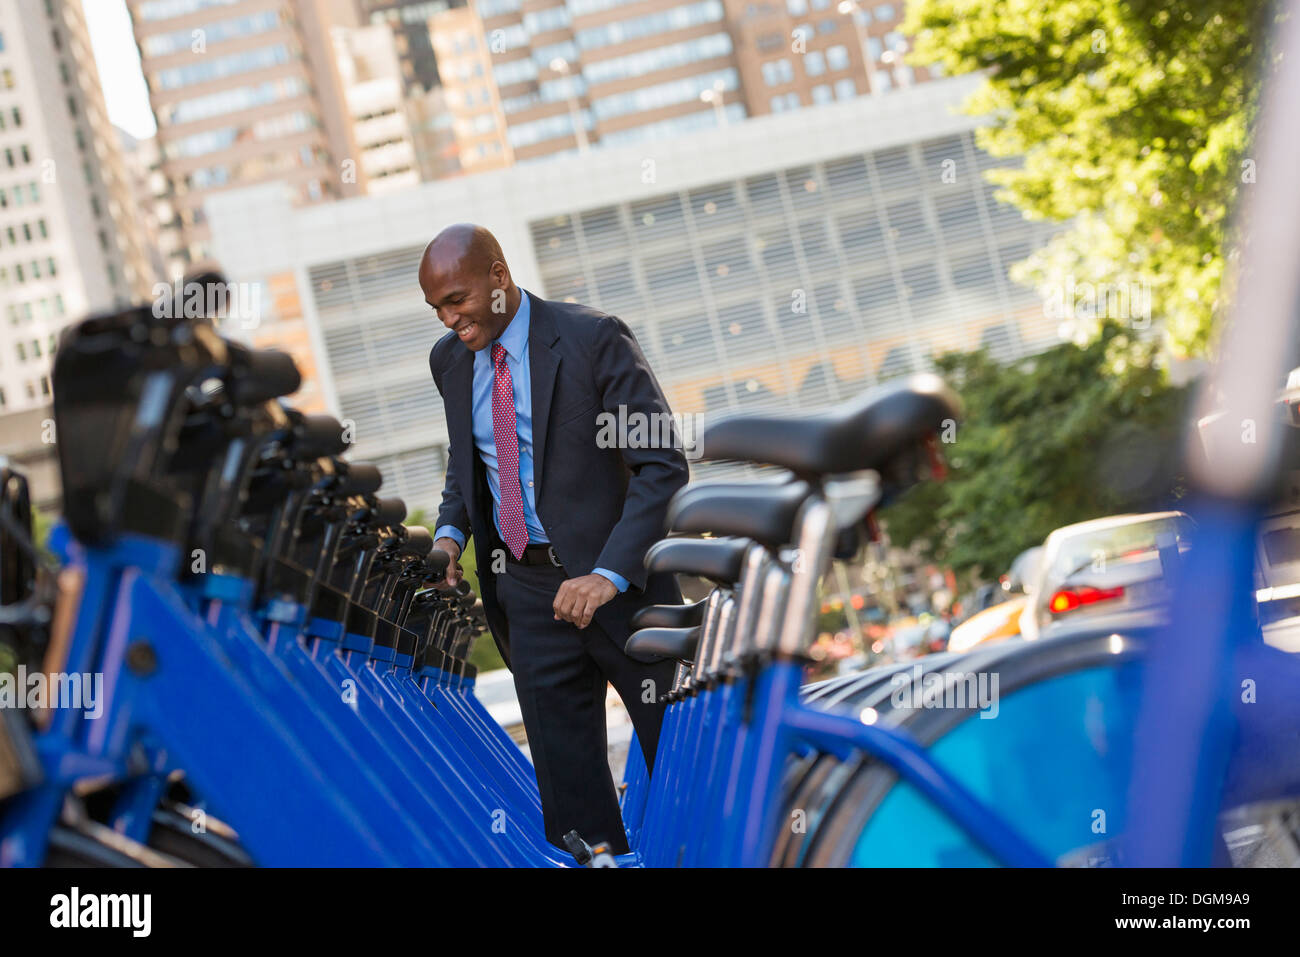 Business people. A man in a business suit beside a rack of rental bicycles. - Stock Image